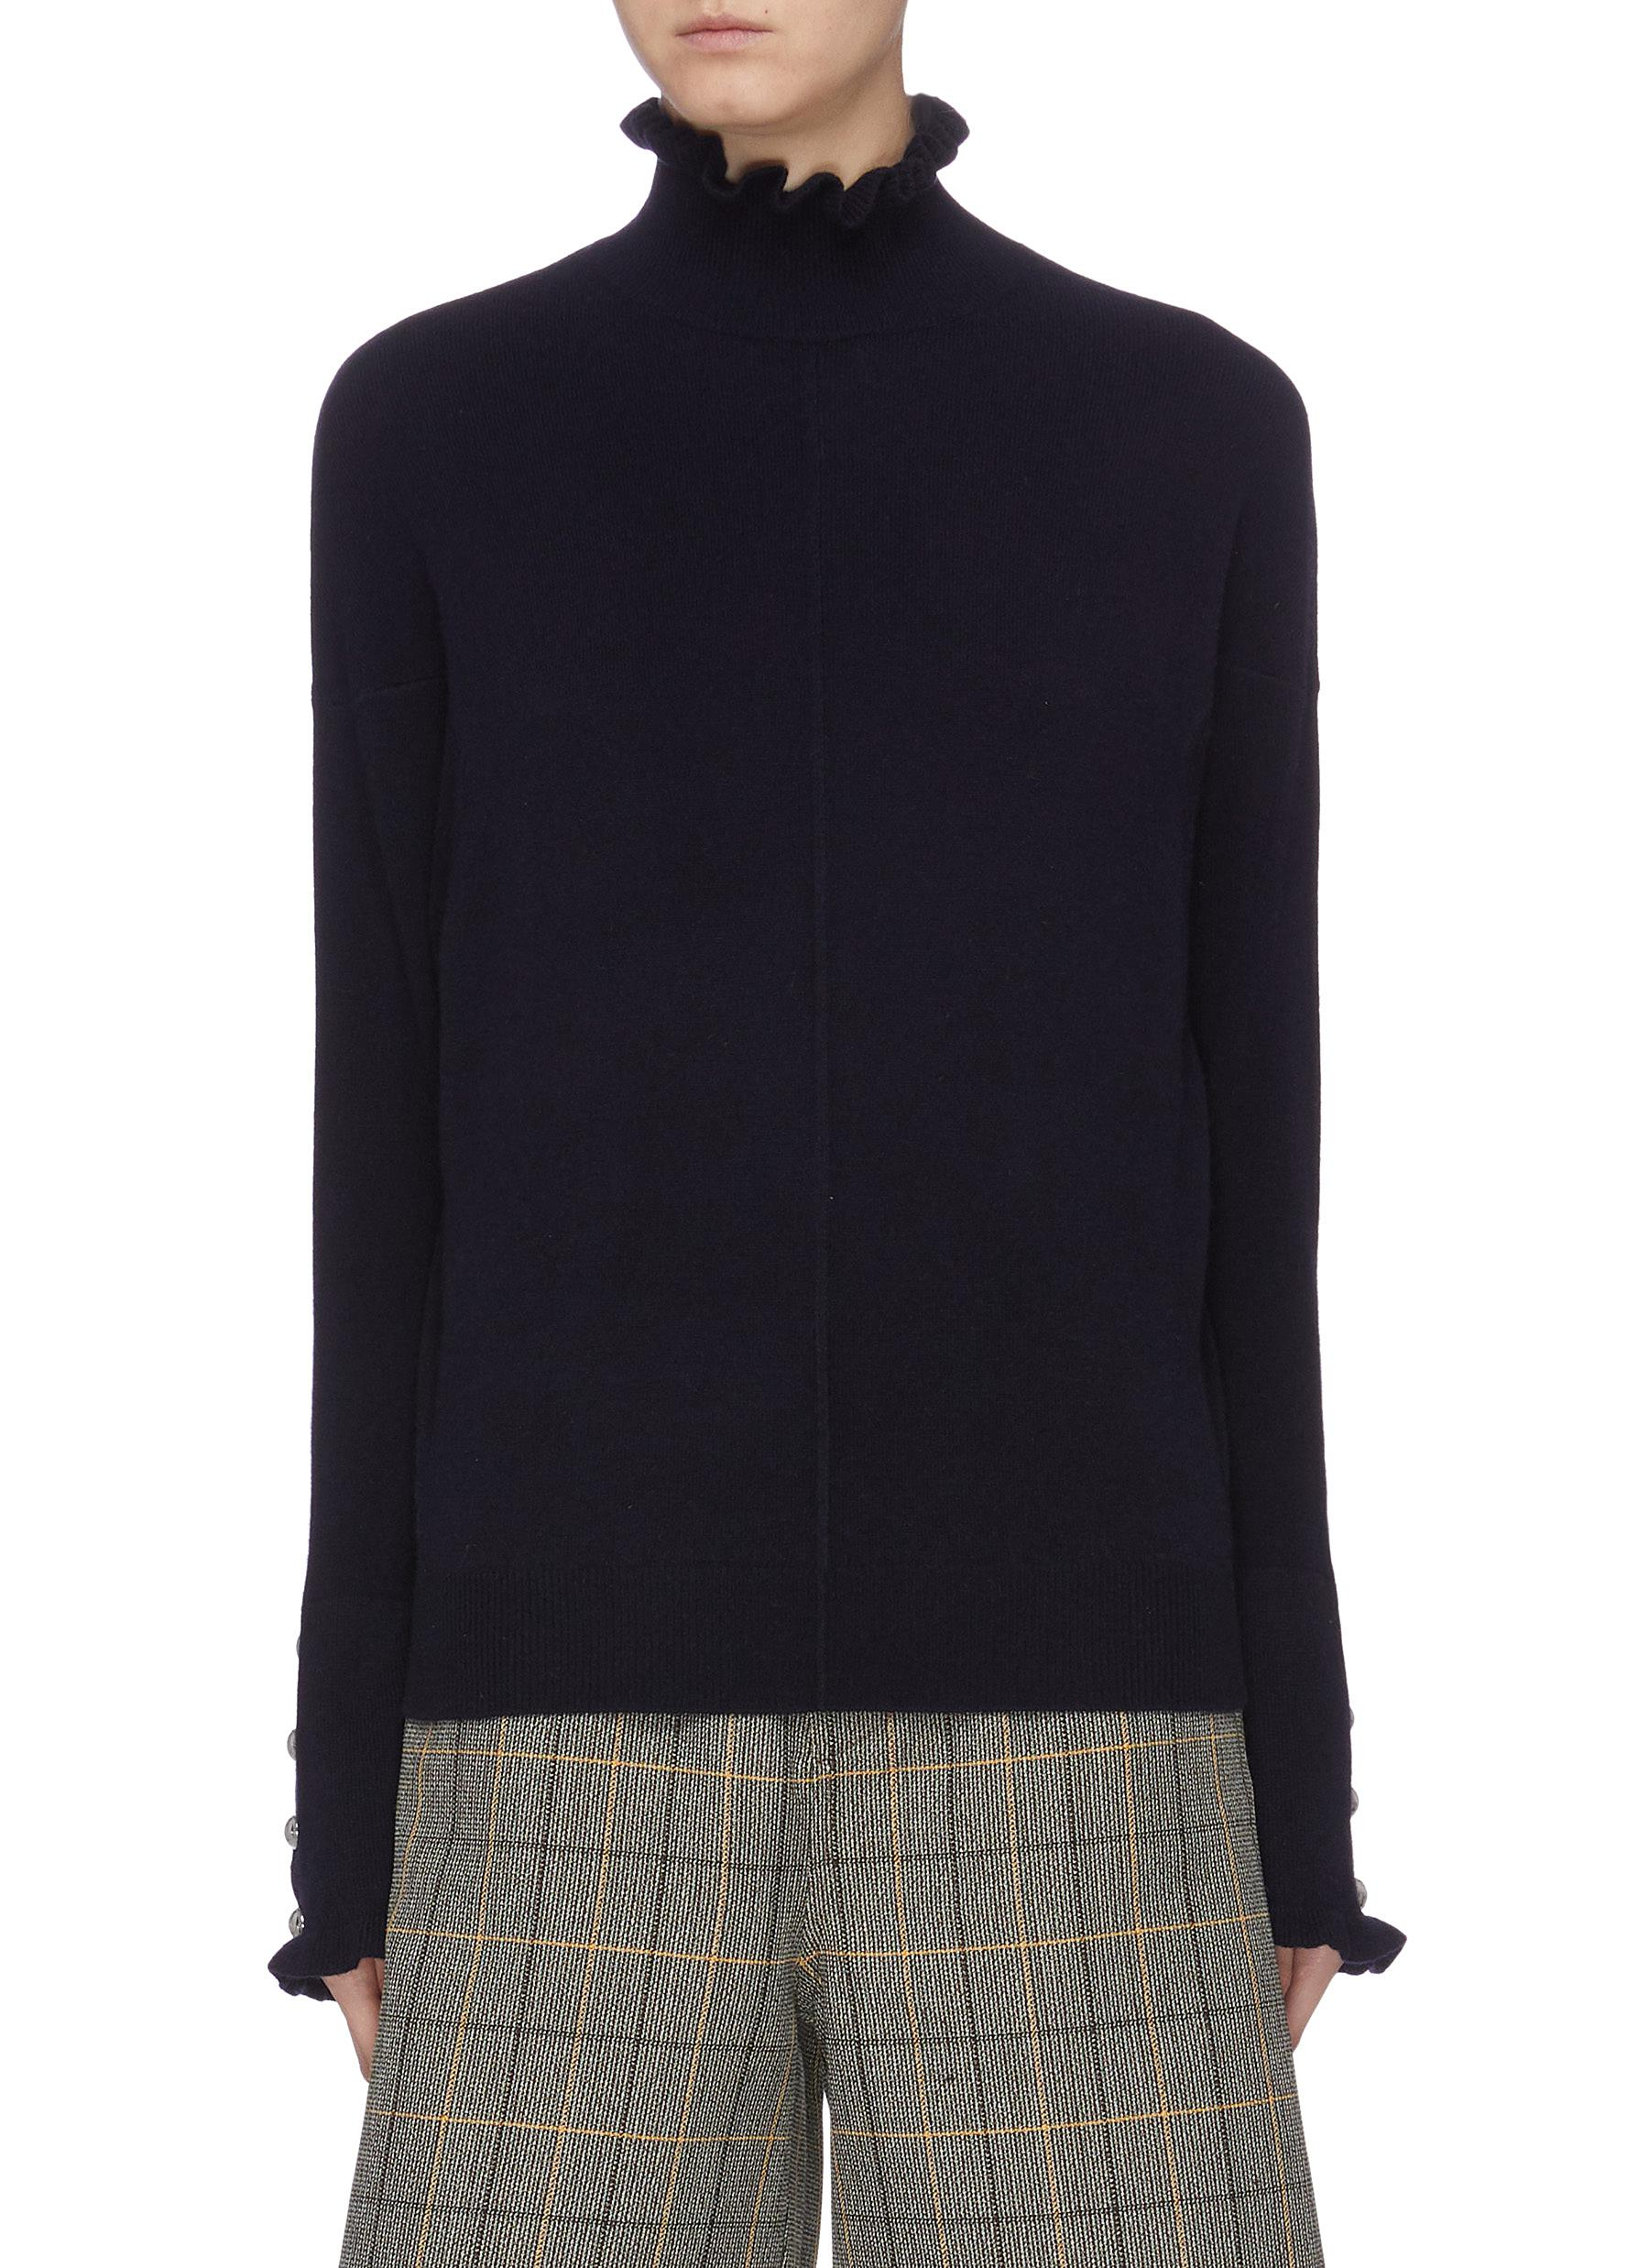 Button cuff ruffle turtleneck sweater by Chloé